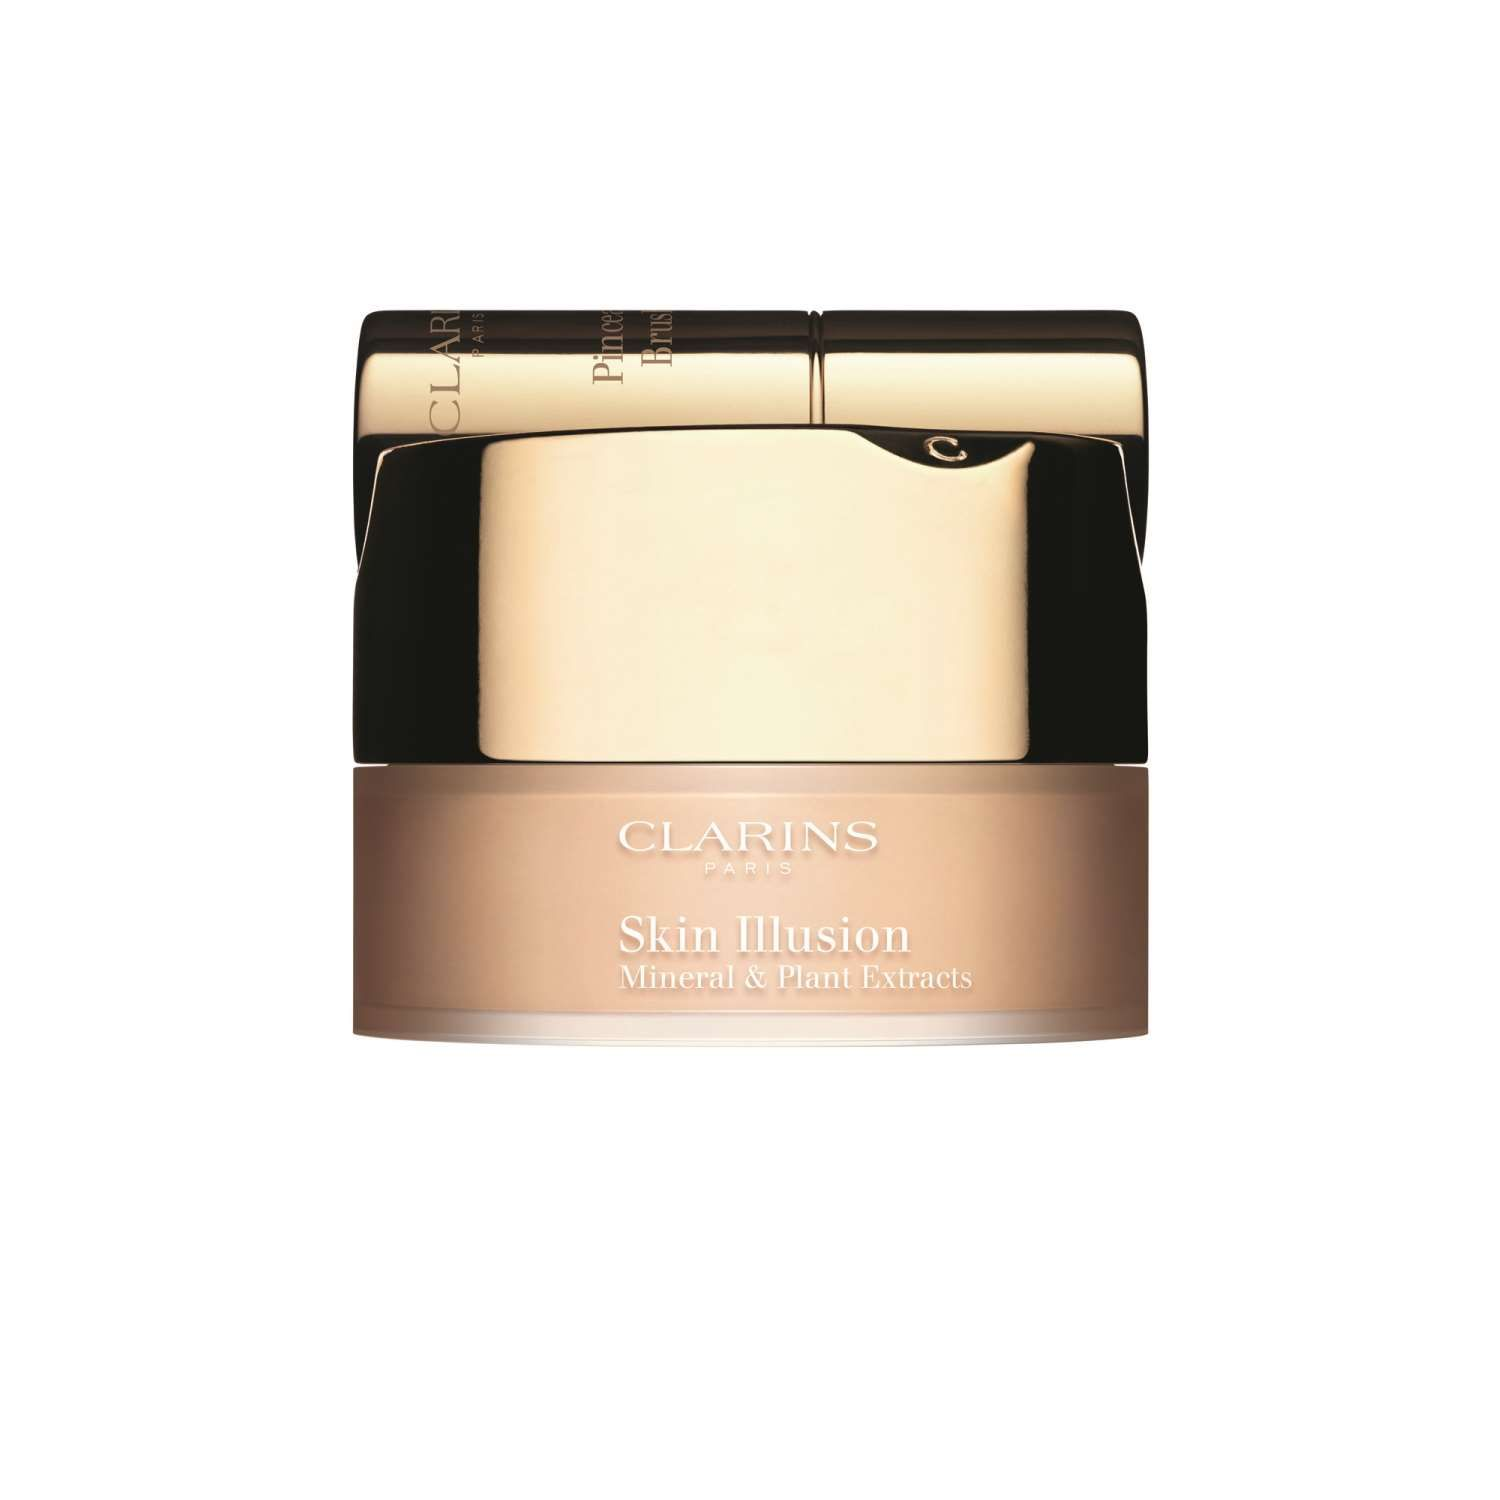 Clarins  Skin illusion mineral  plant extracts fond de teint poudre libre  fondotinta in polvere 112 amber